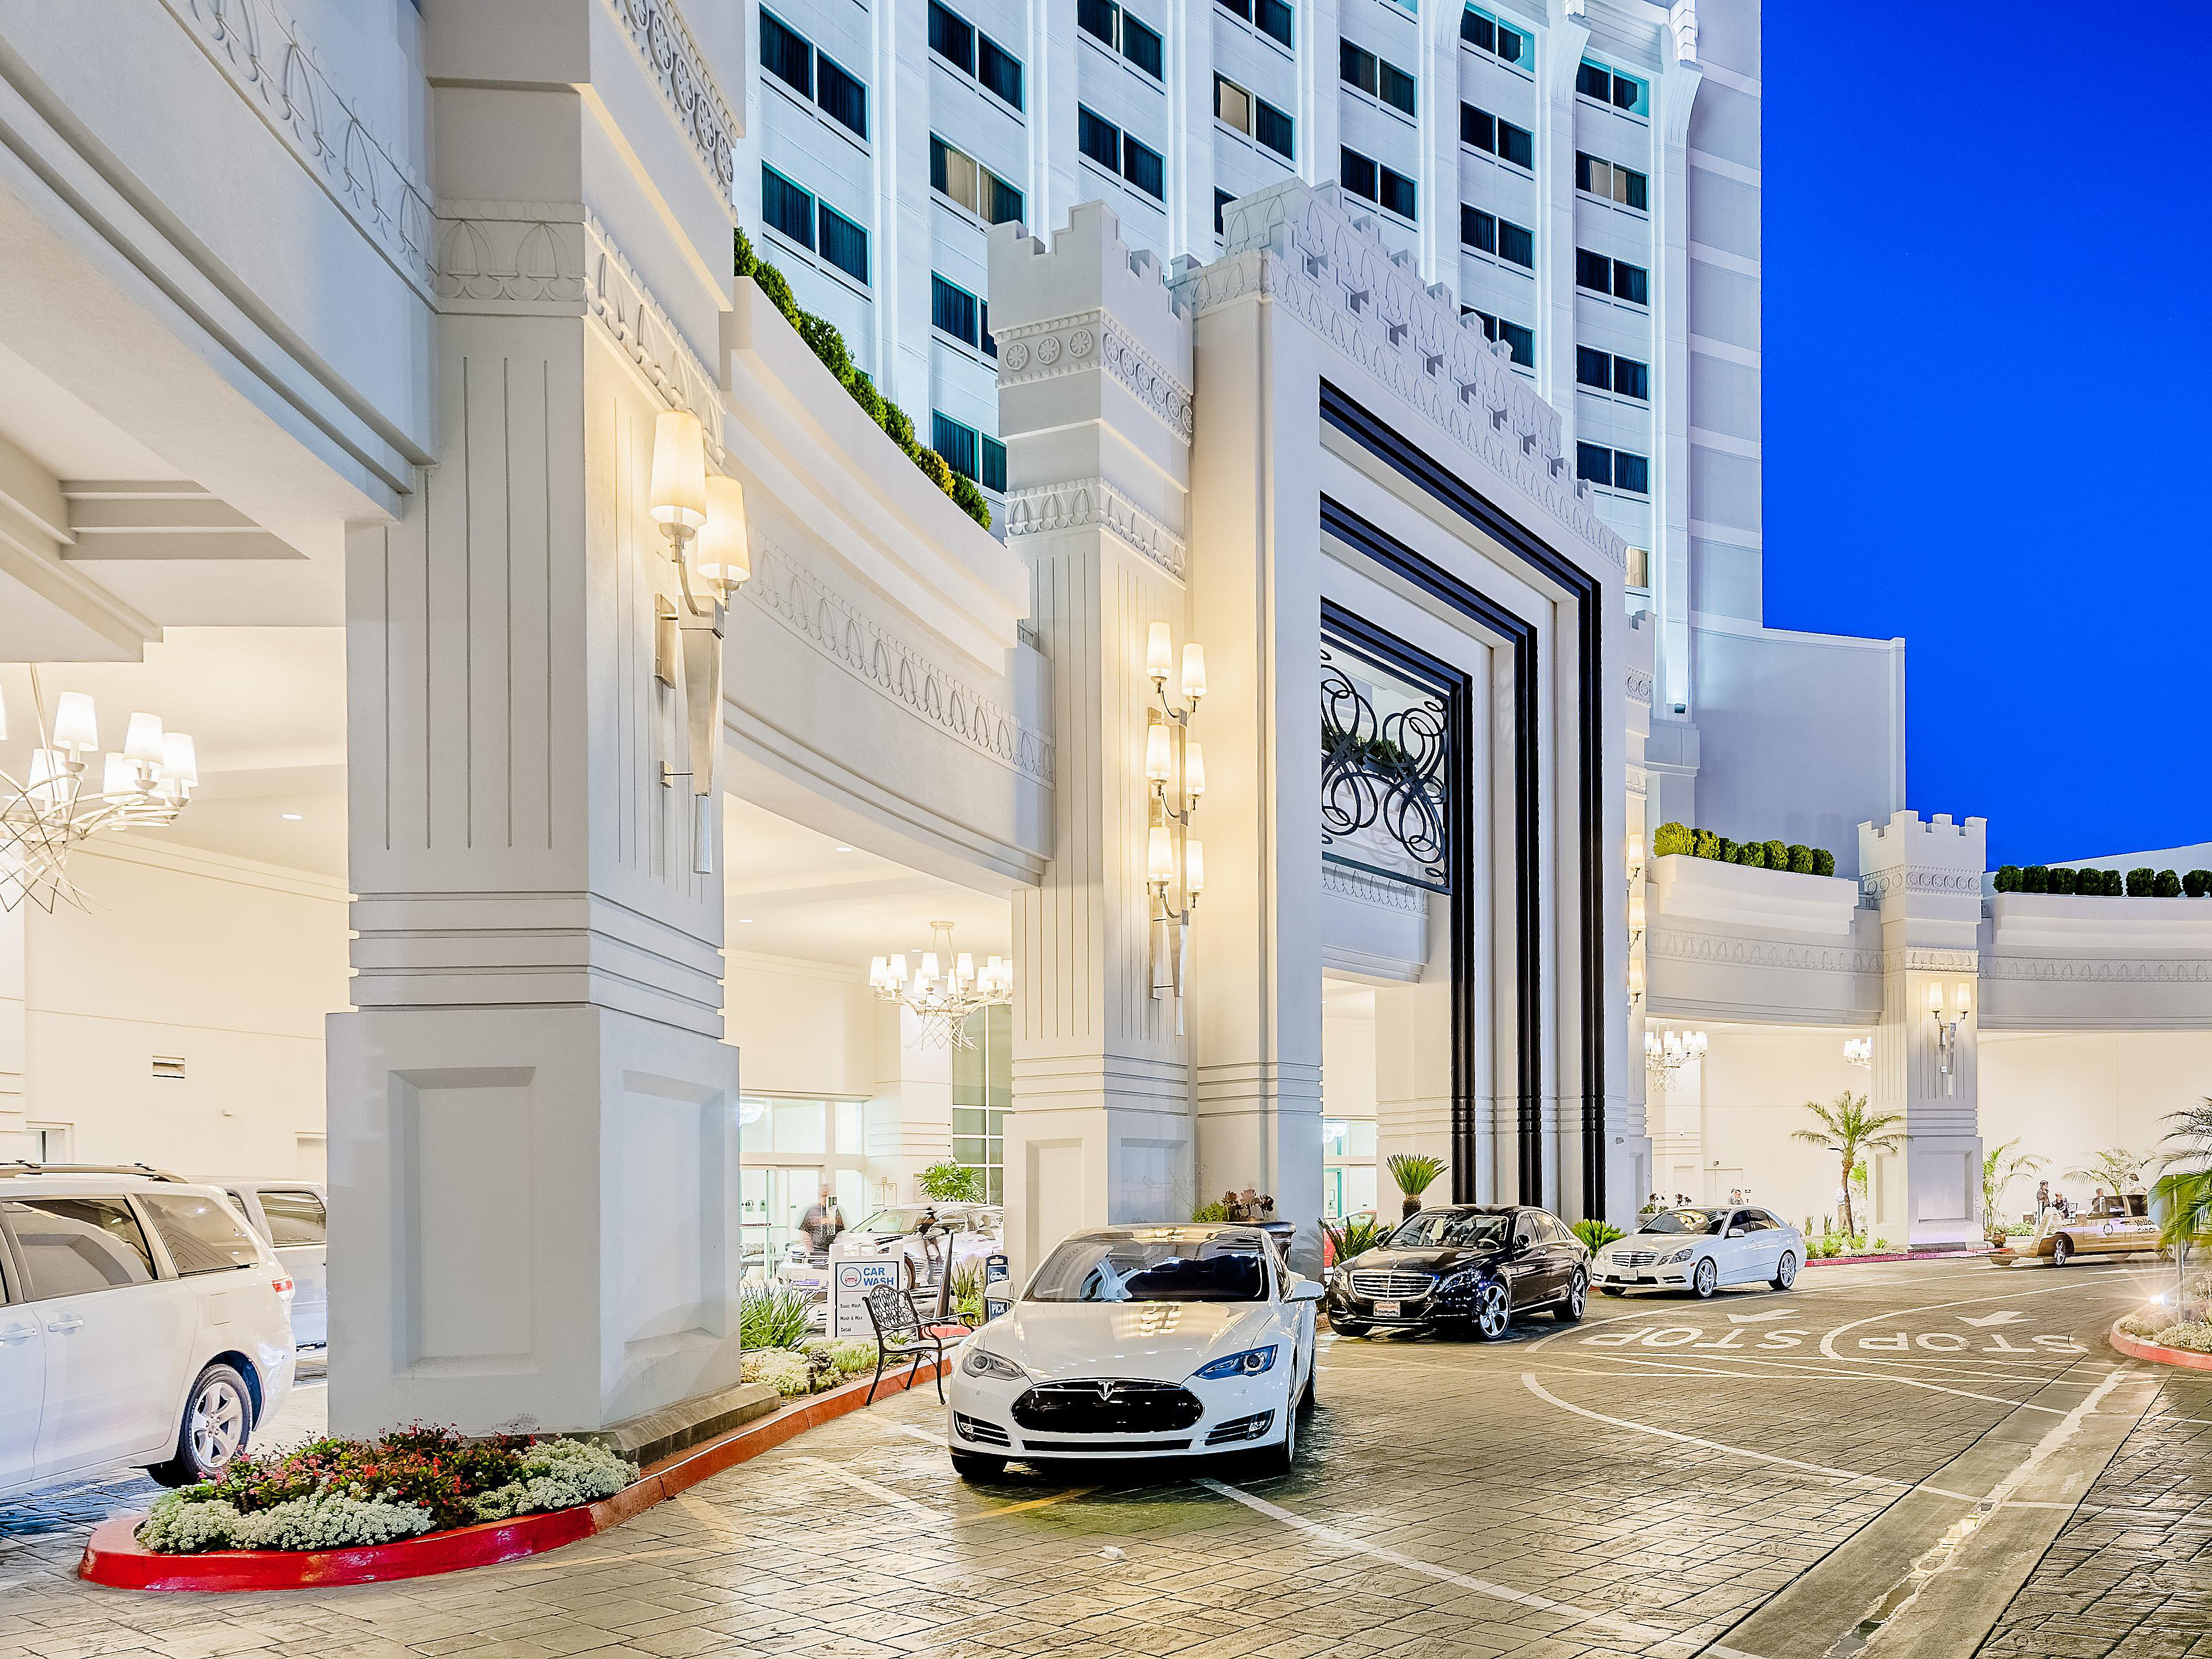 Hotels in Commerce, CA | Crowne Plaza Los Angeles-Commerce